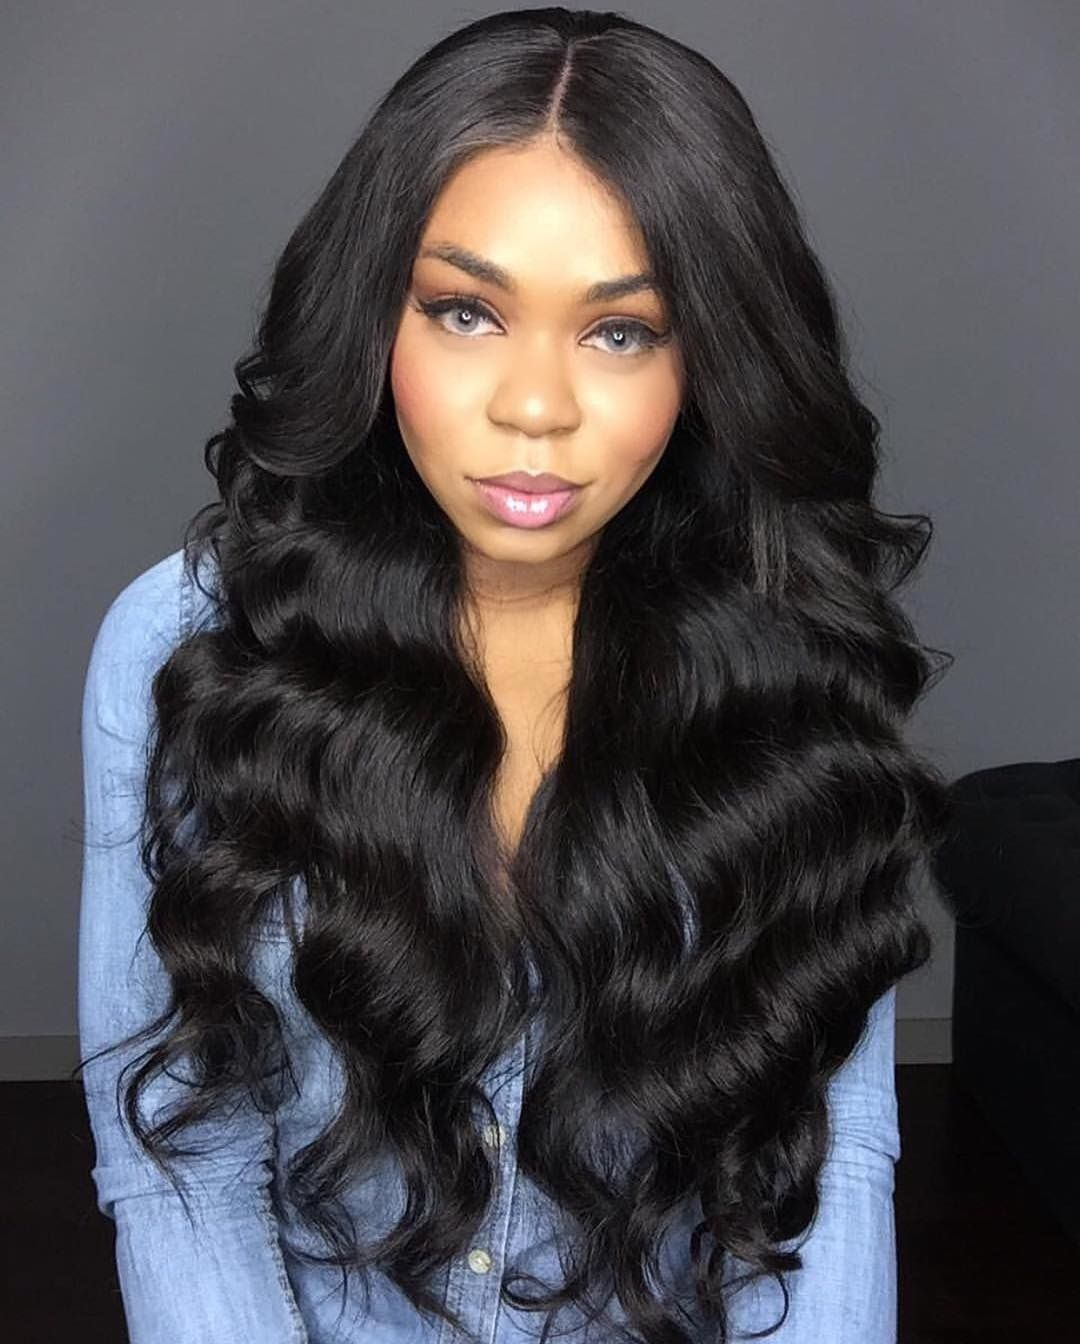 pin by raymooind taliaferro on gorgeous in 2019 | body wave